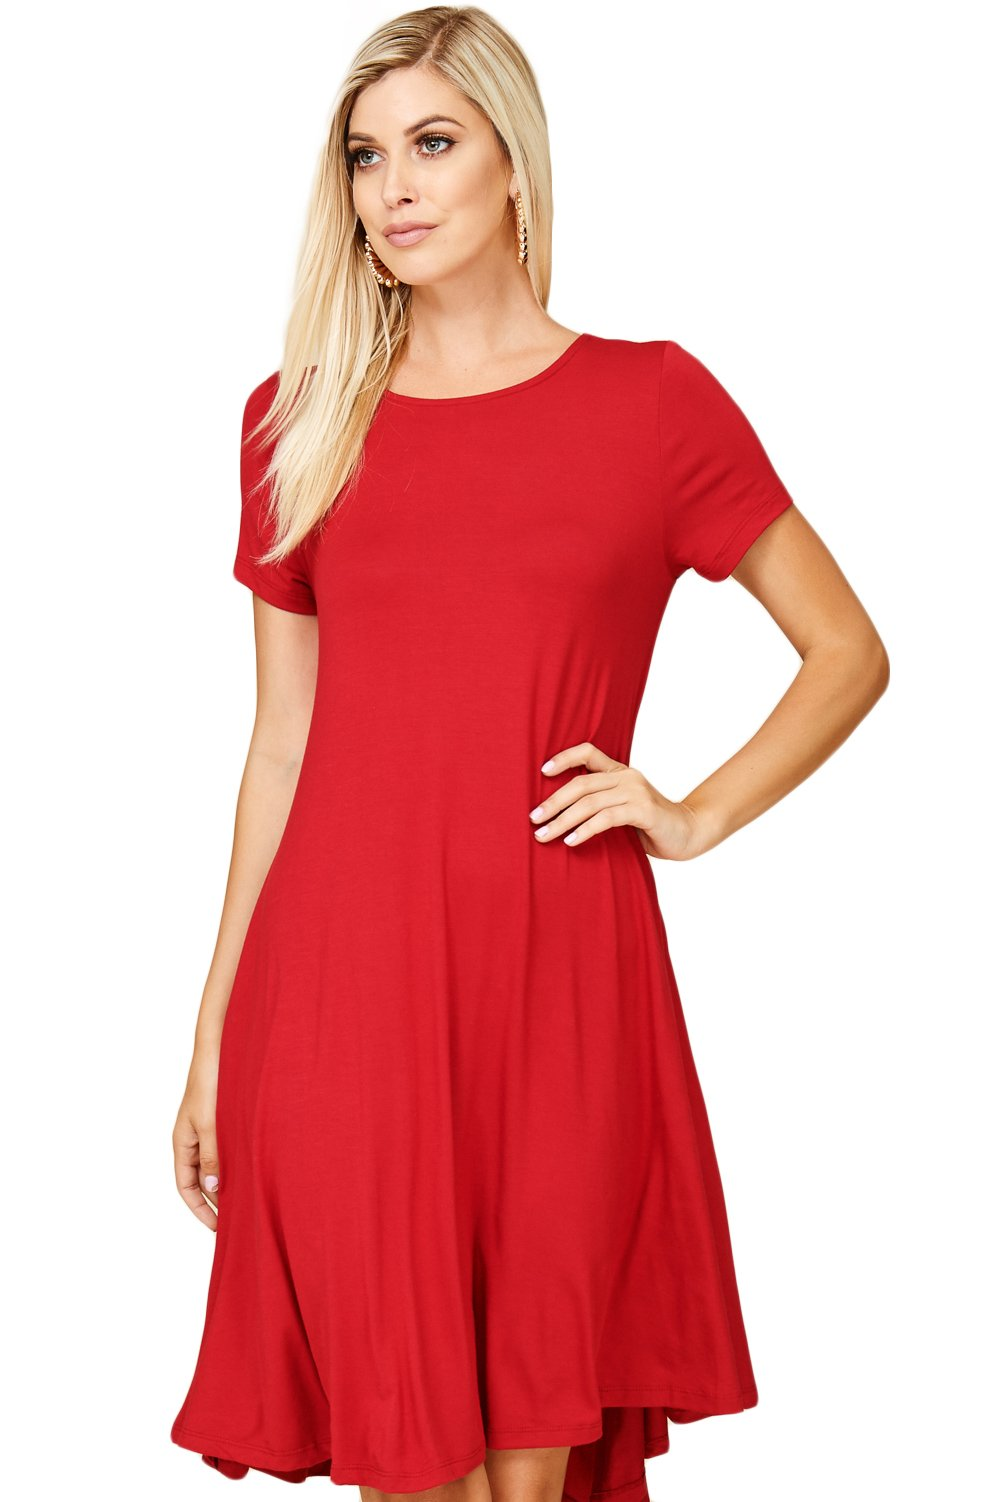 Annabelle Women's Comfy Short Sleeve Scoop Neck Swing Dresses With Pockets Large Dark Red D5213 by Annabelle